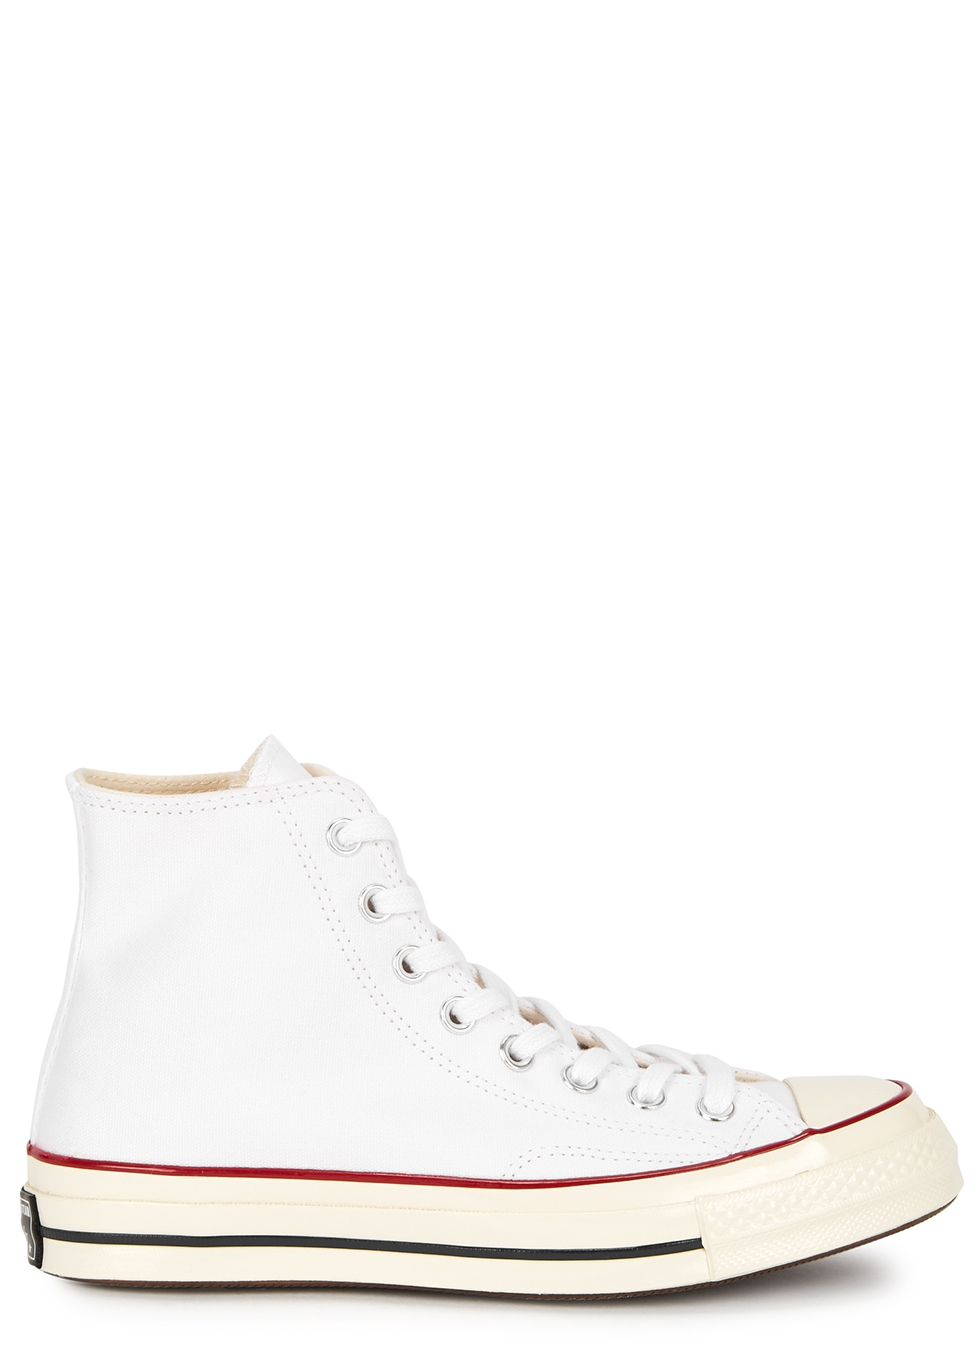 Chuck 70 white canvas hi-top sneakers